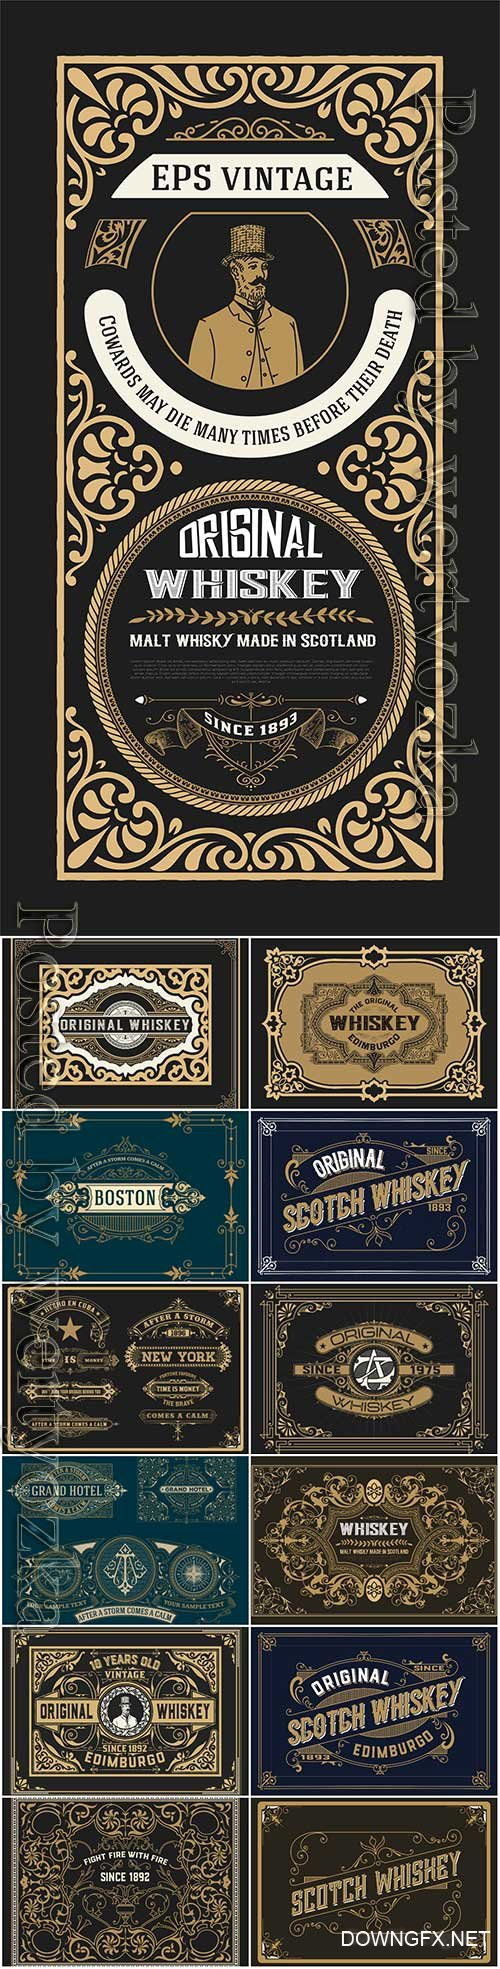 Vector vintage labels, emblems, logos, ribbons, patterns # 18